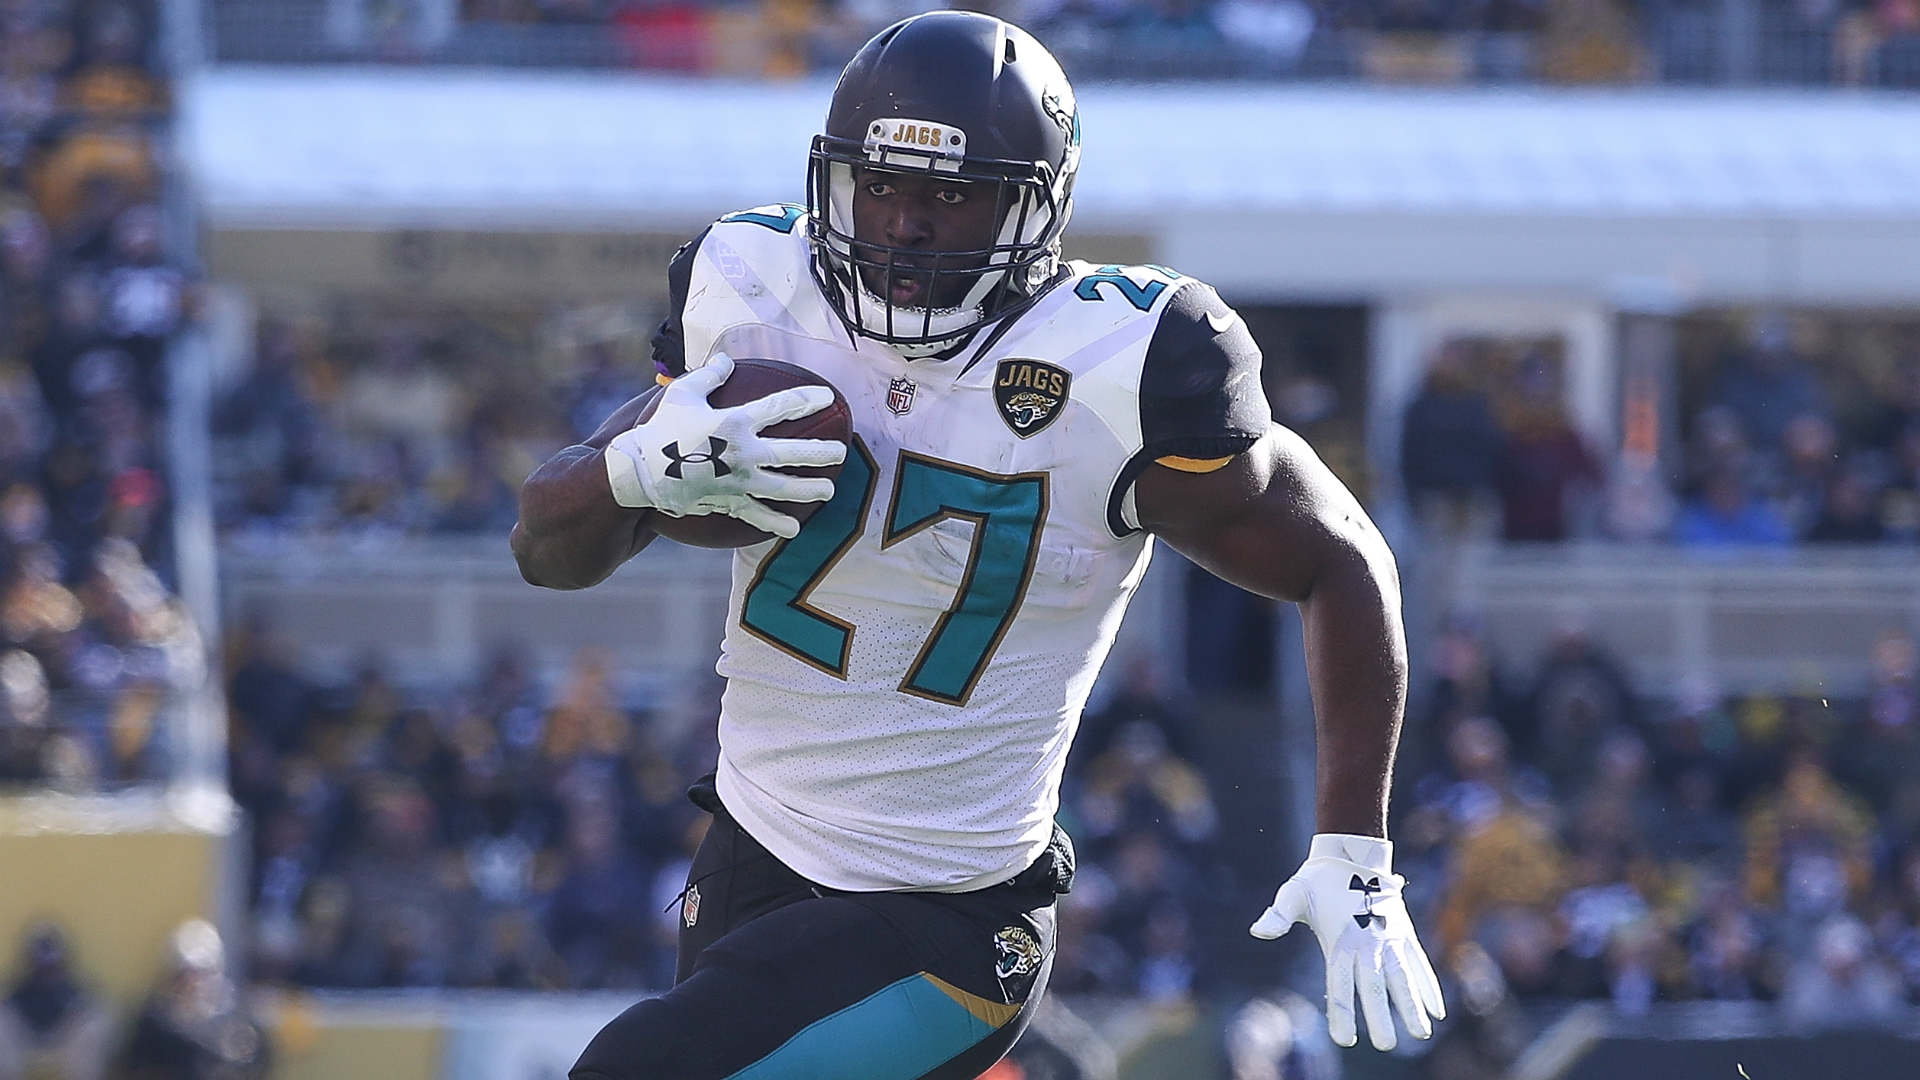 Former Hurricanes' star predicted score of Jaguars-Steelers playoff game